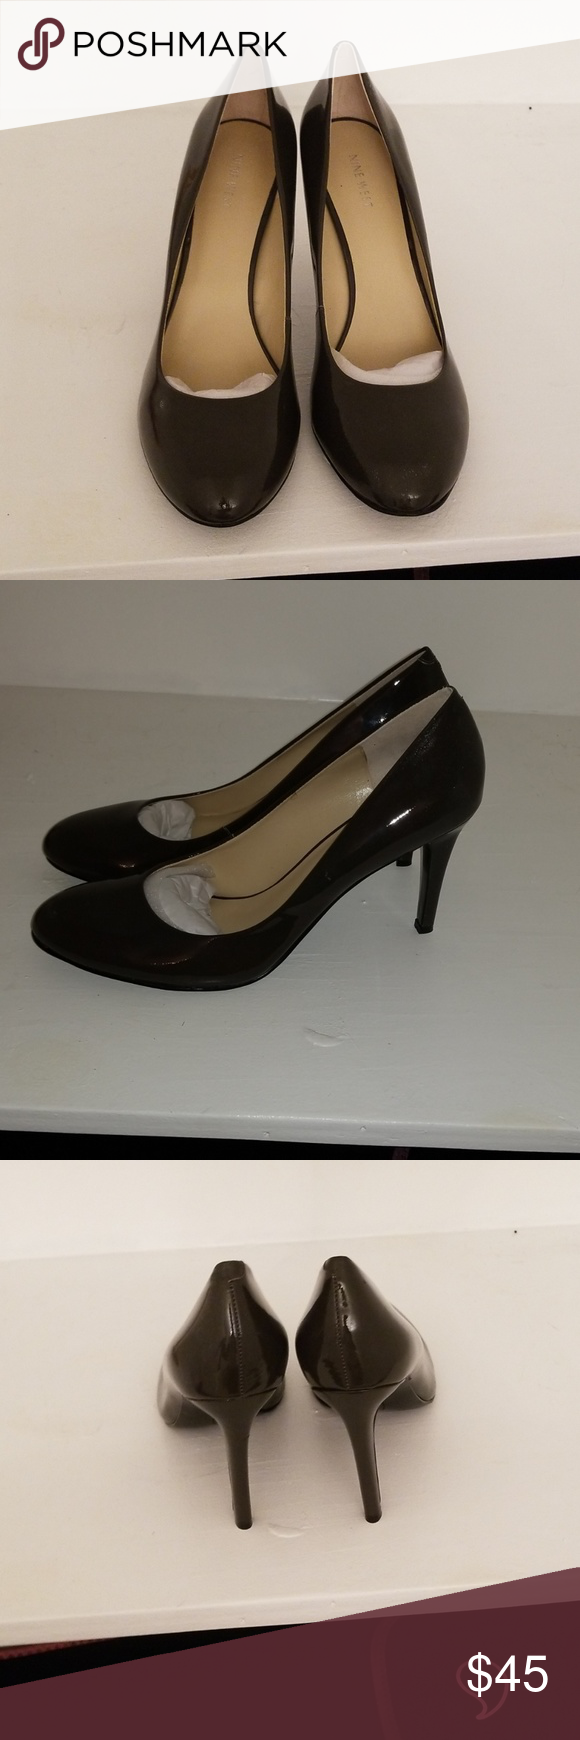 Nine West Pumps New In Box Never Worn Dark Grey Patent Leather Pumps Size 12 Nine West Shoes Heels Shoes Women Heels Pumps Patent Leather Pumps